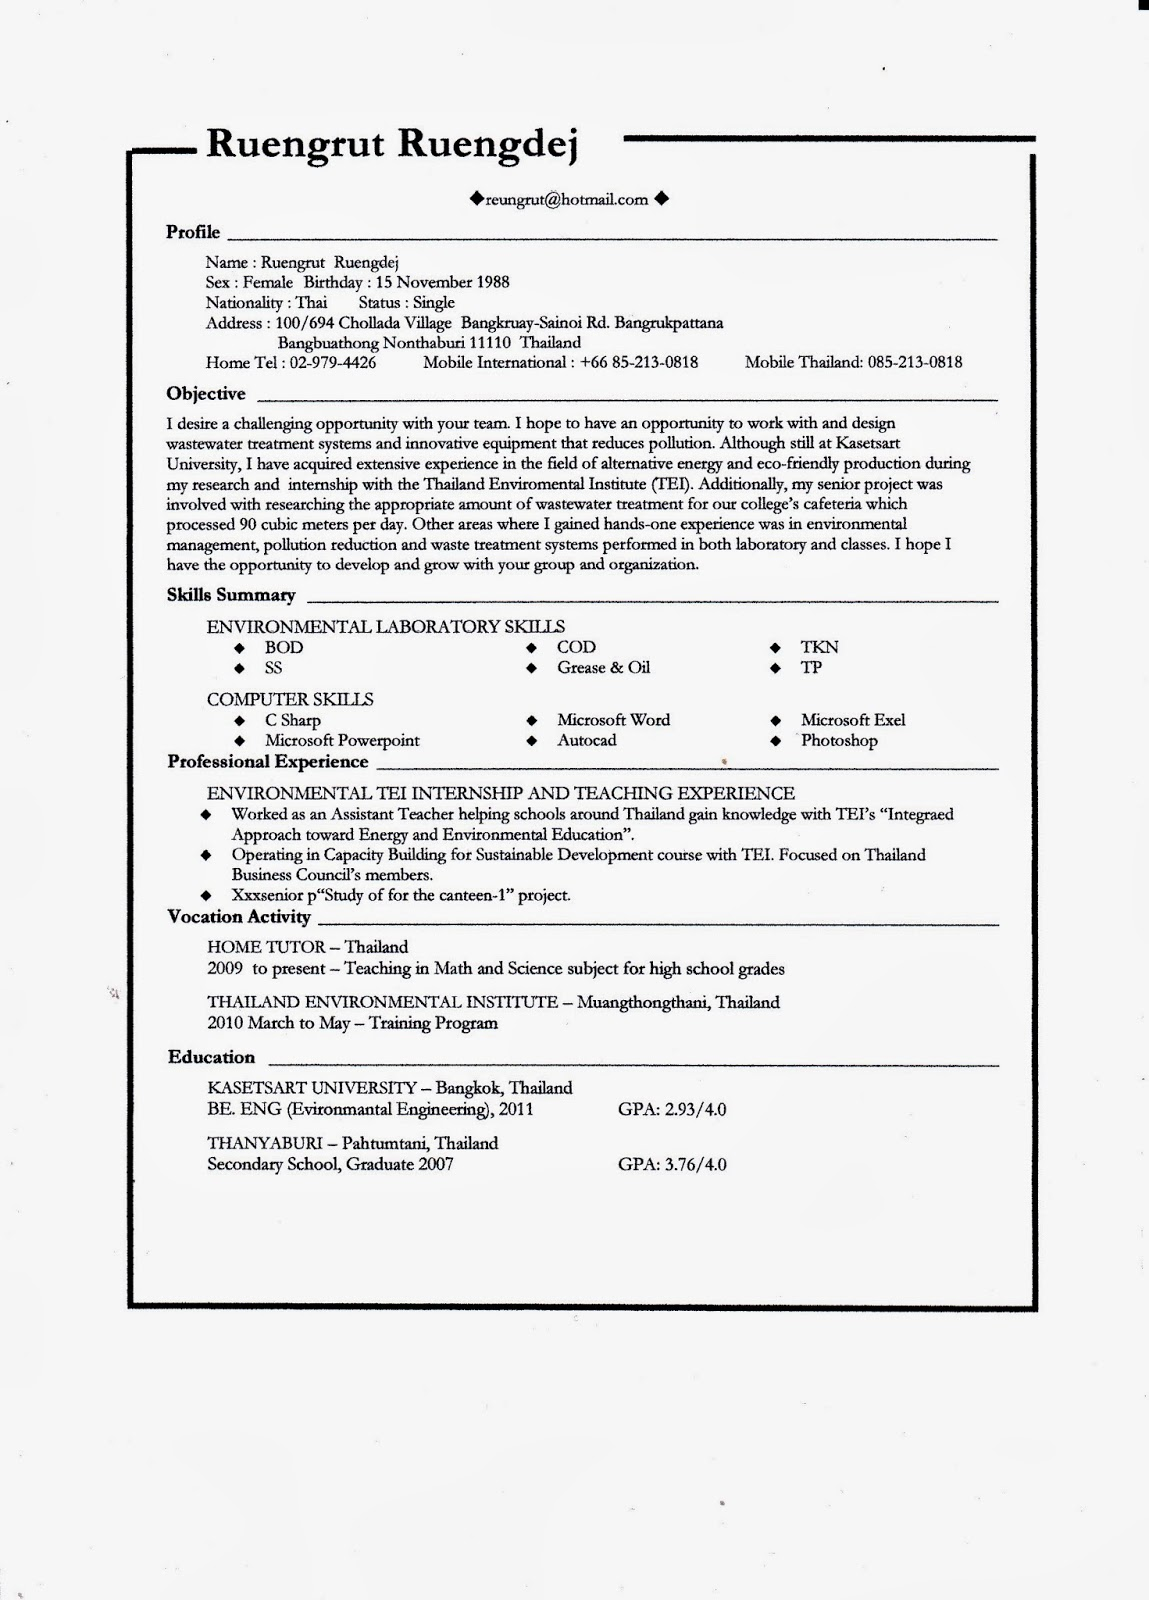 sample resume environmental engineering kasetsart university. Resume Example. Resume CV Cover Letter